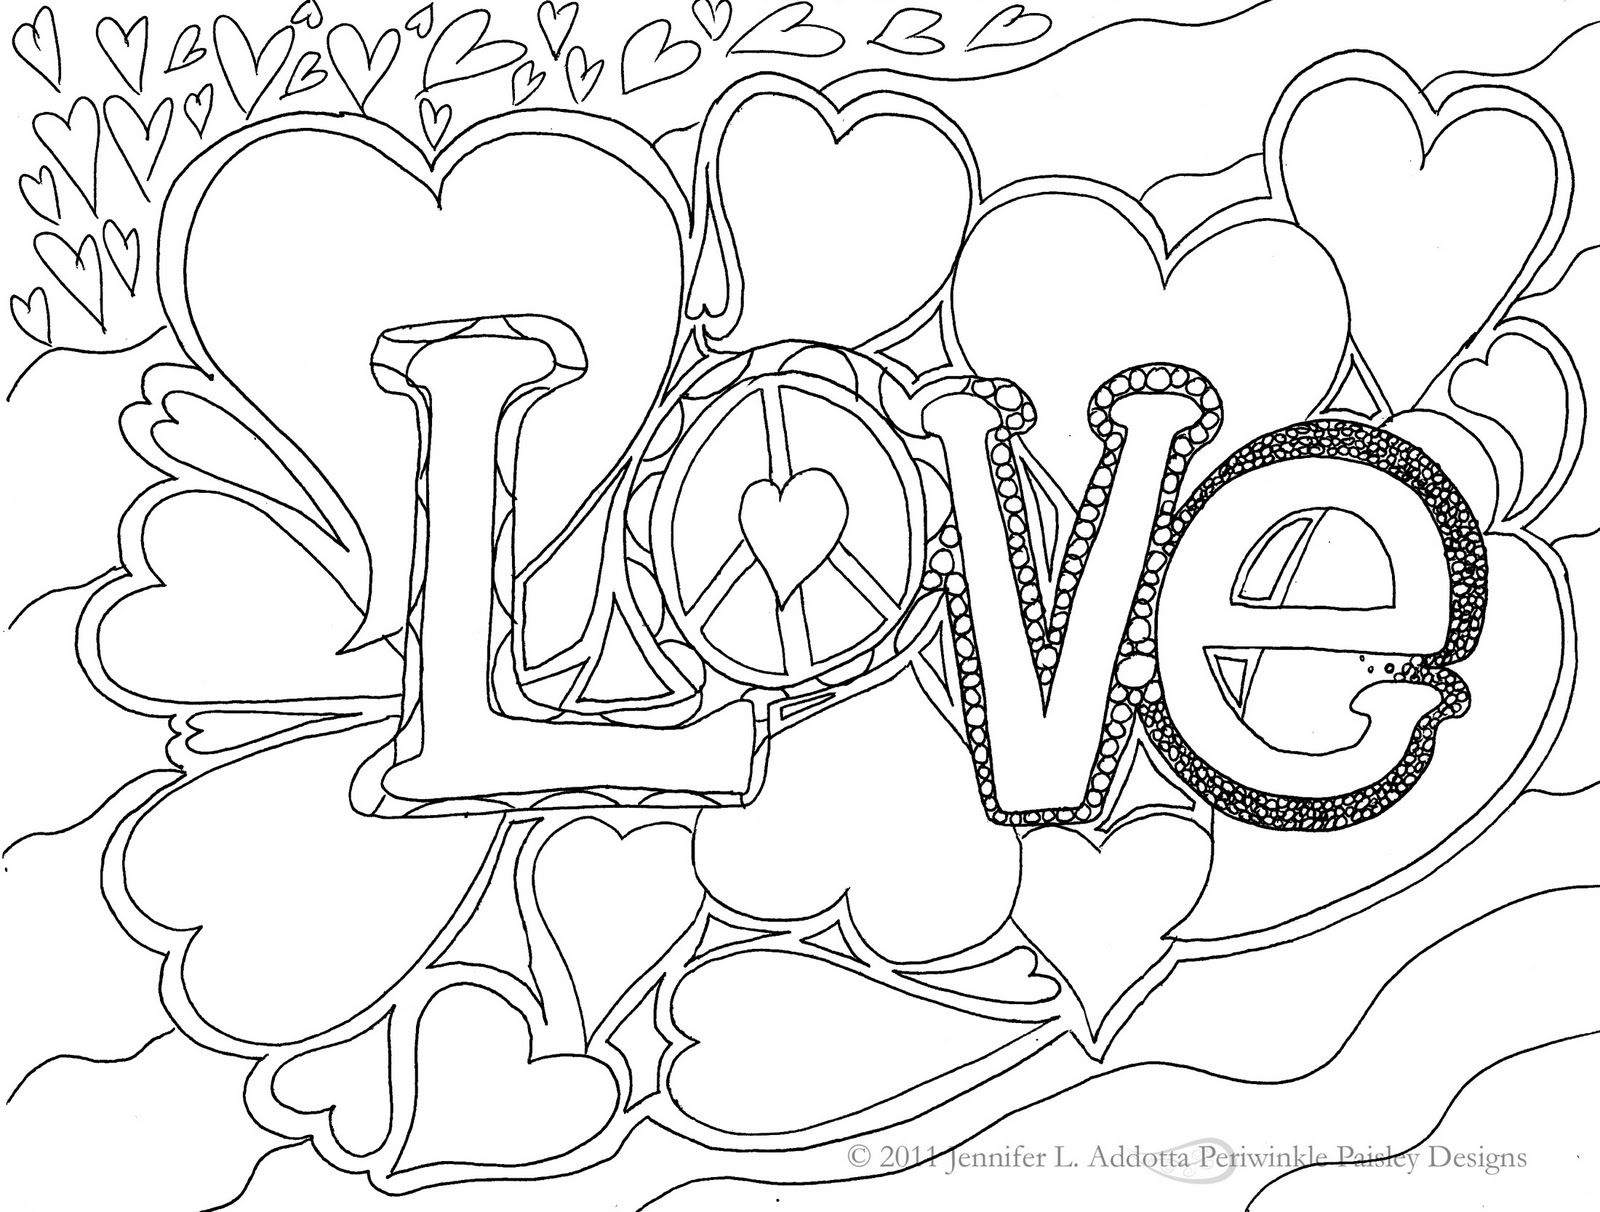 love printable coloring pages for adultsjpg 16001212 - Love Printable Coloring Pages